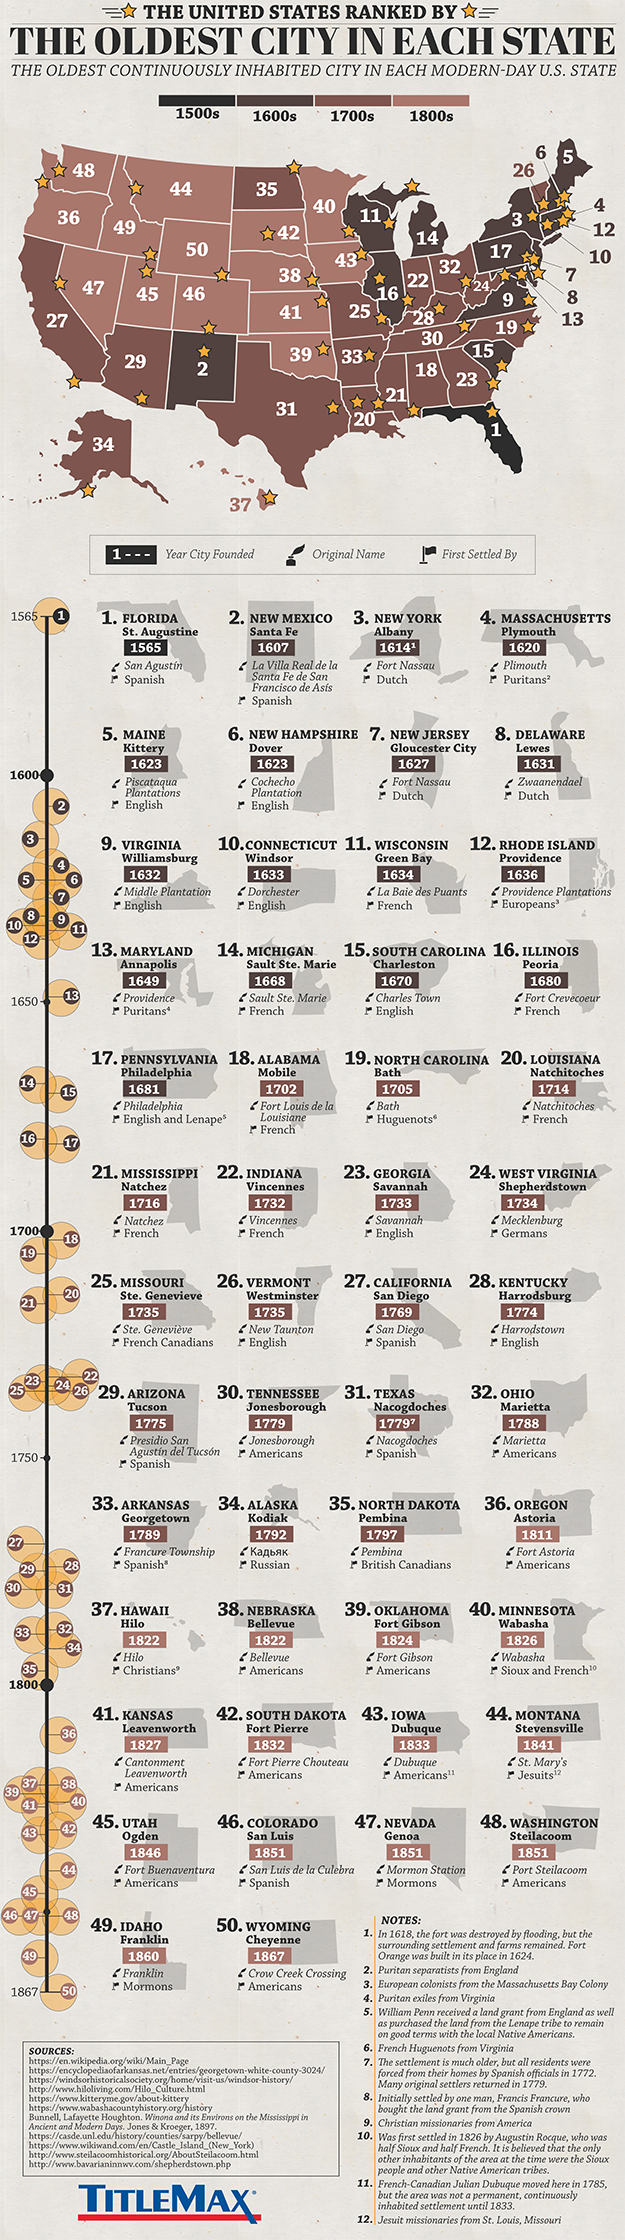 Infographic for The United States Ranked by the Oldest City in Each State